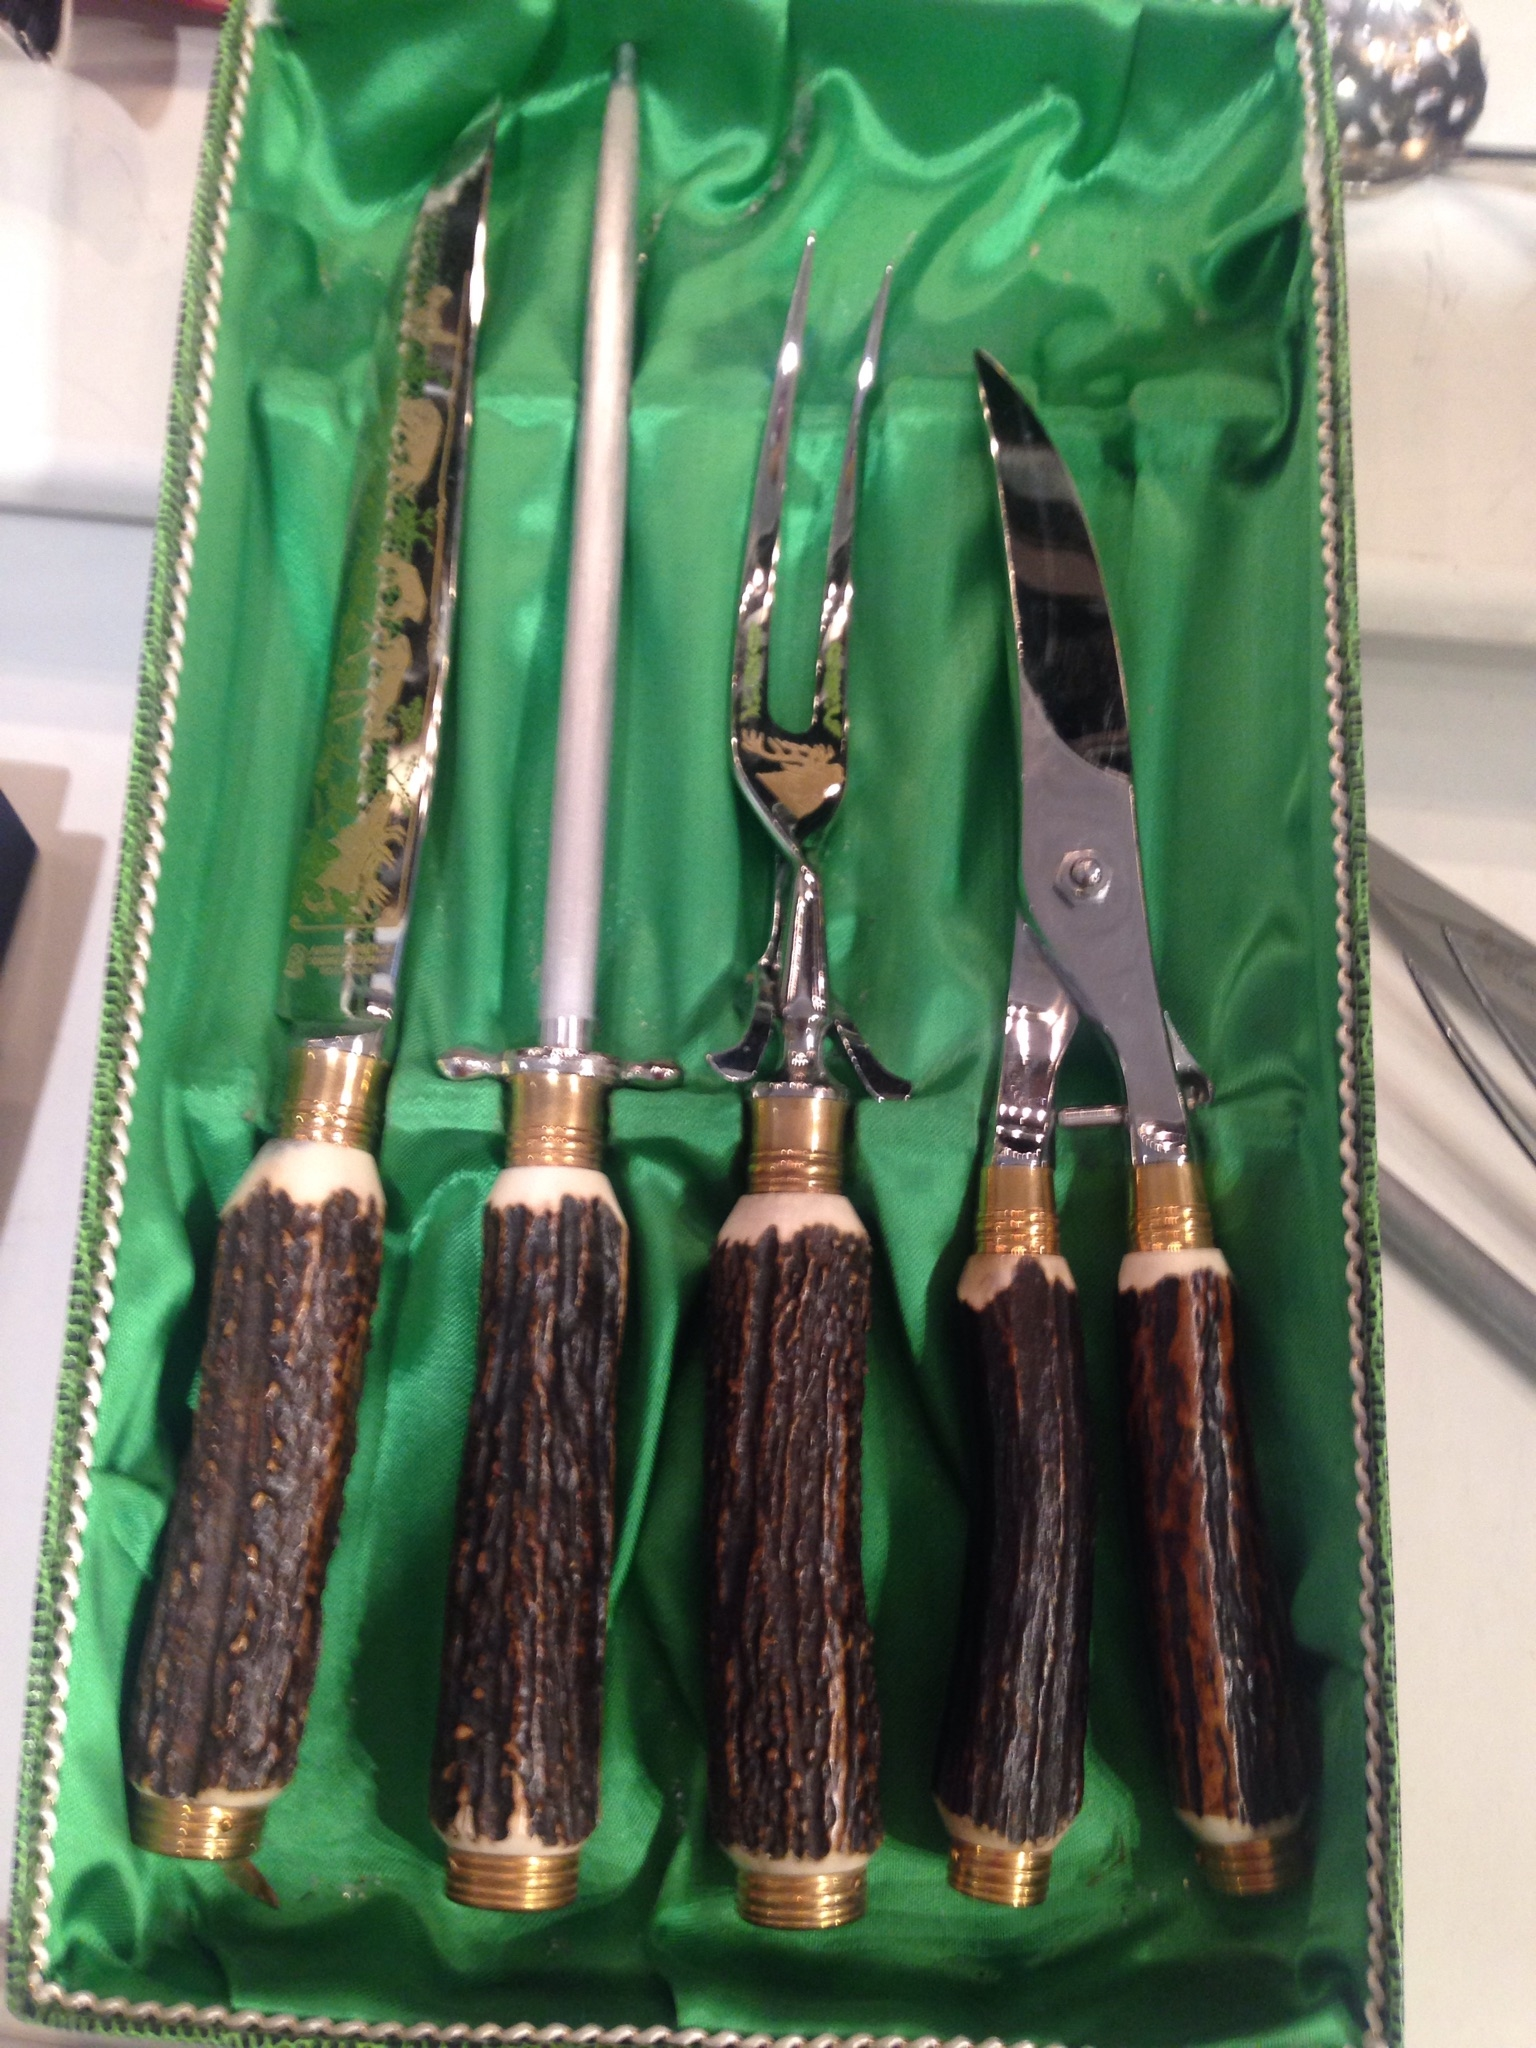 4 Piece Antique Solingen Germany Carving Set With Box